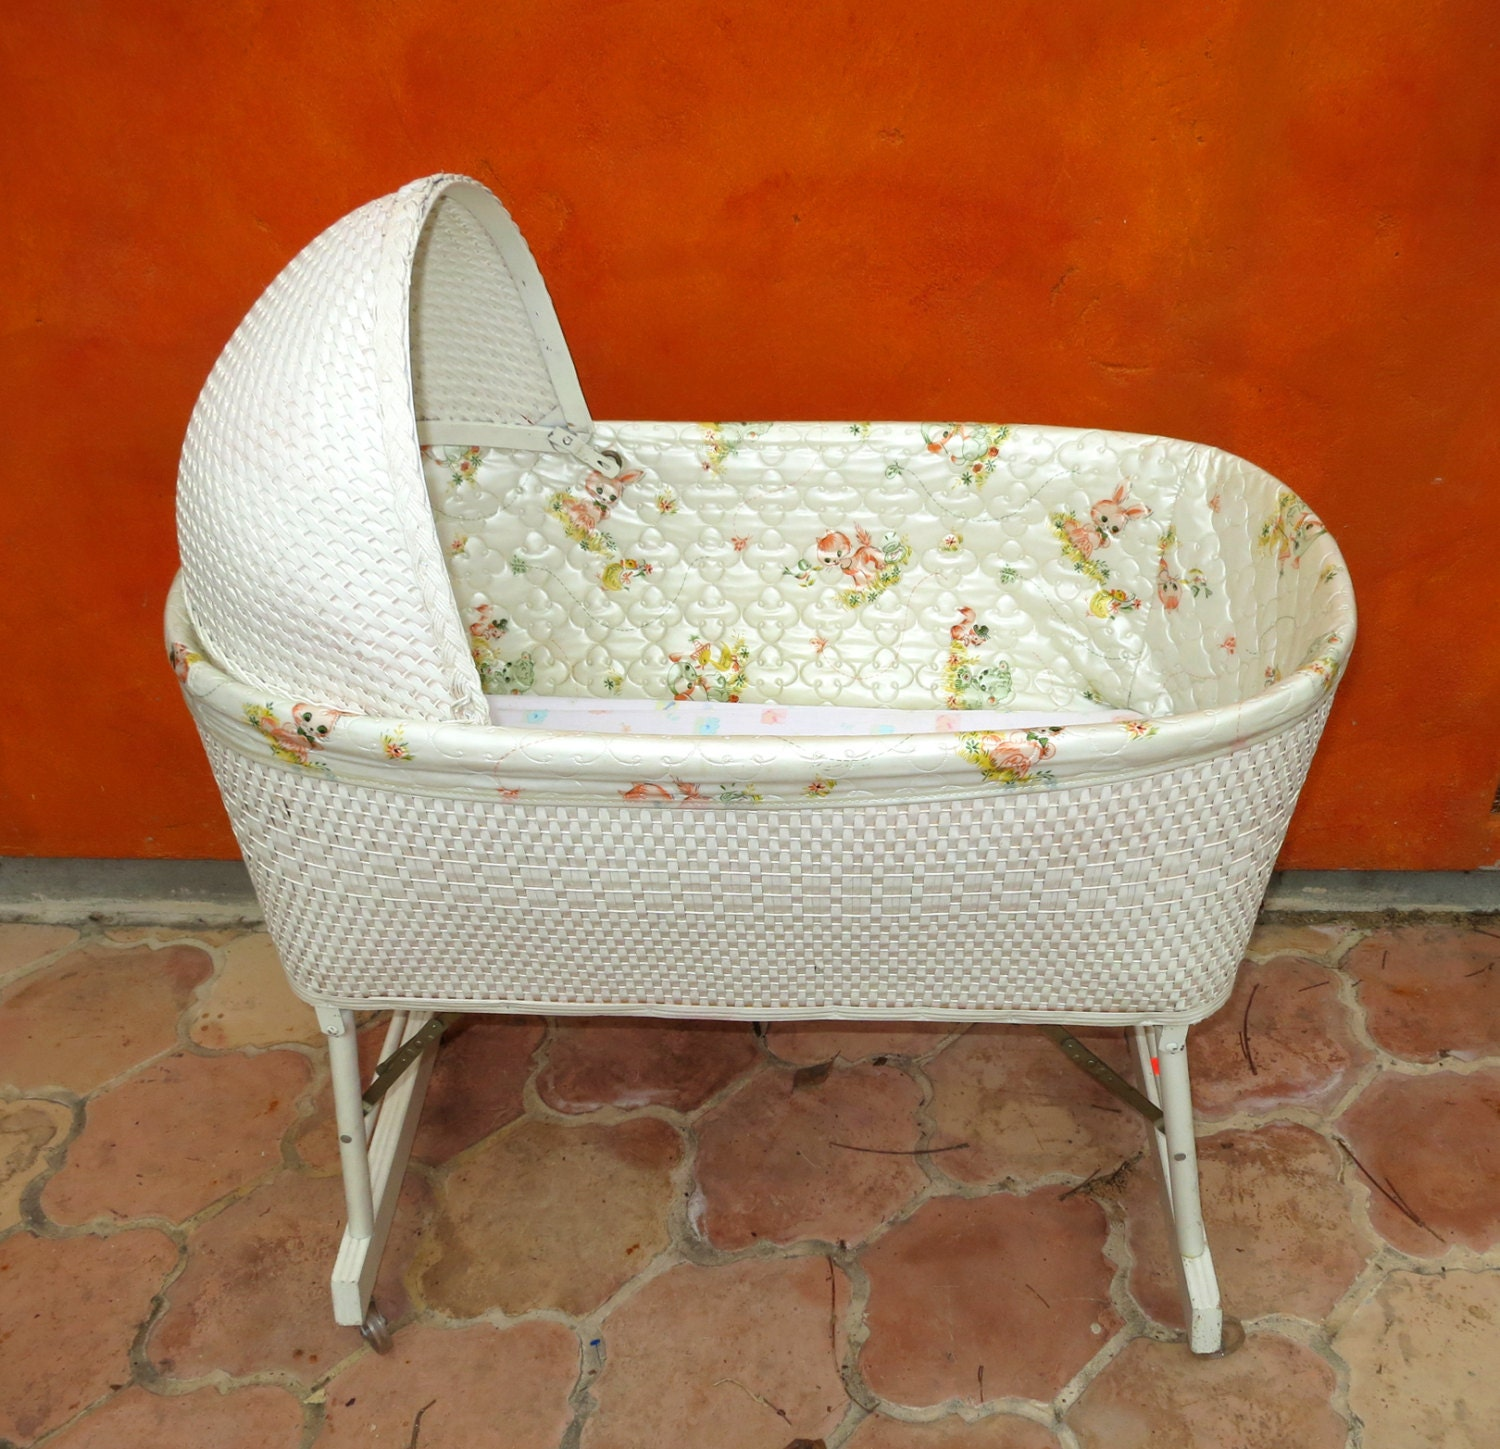 Vintage 1950s 1960s White Wicker Baby Bassinet W Hood